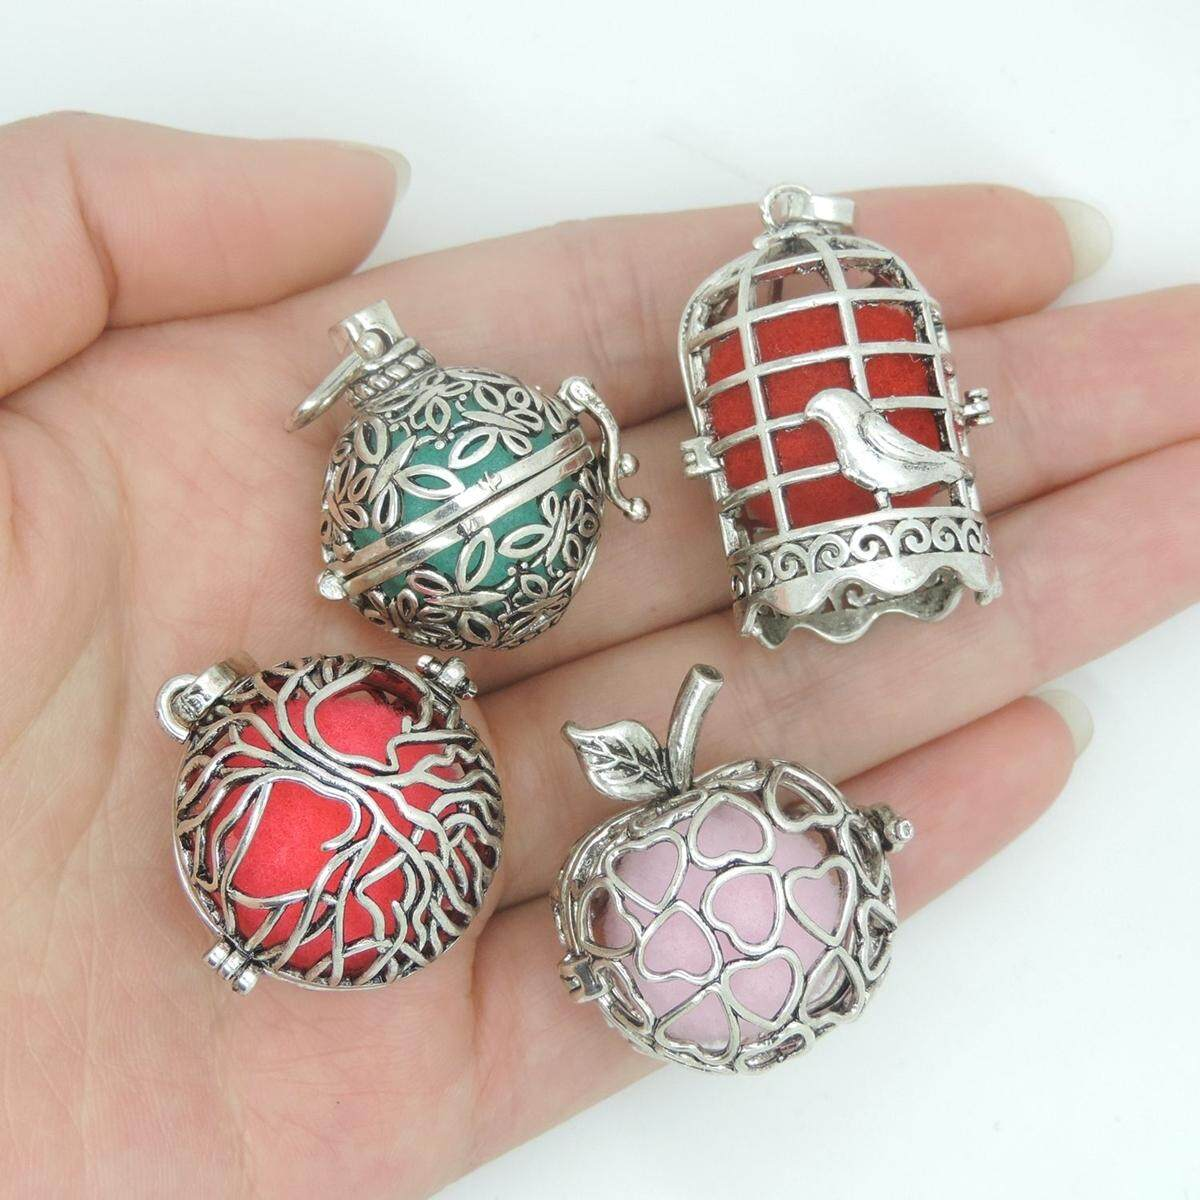 4pcs Cage Perfume Essential Oil Aromatherapy Locket Necklace & 12 Diffusion Ball By Glimmer.